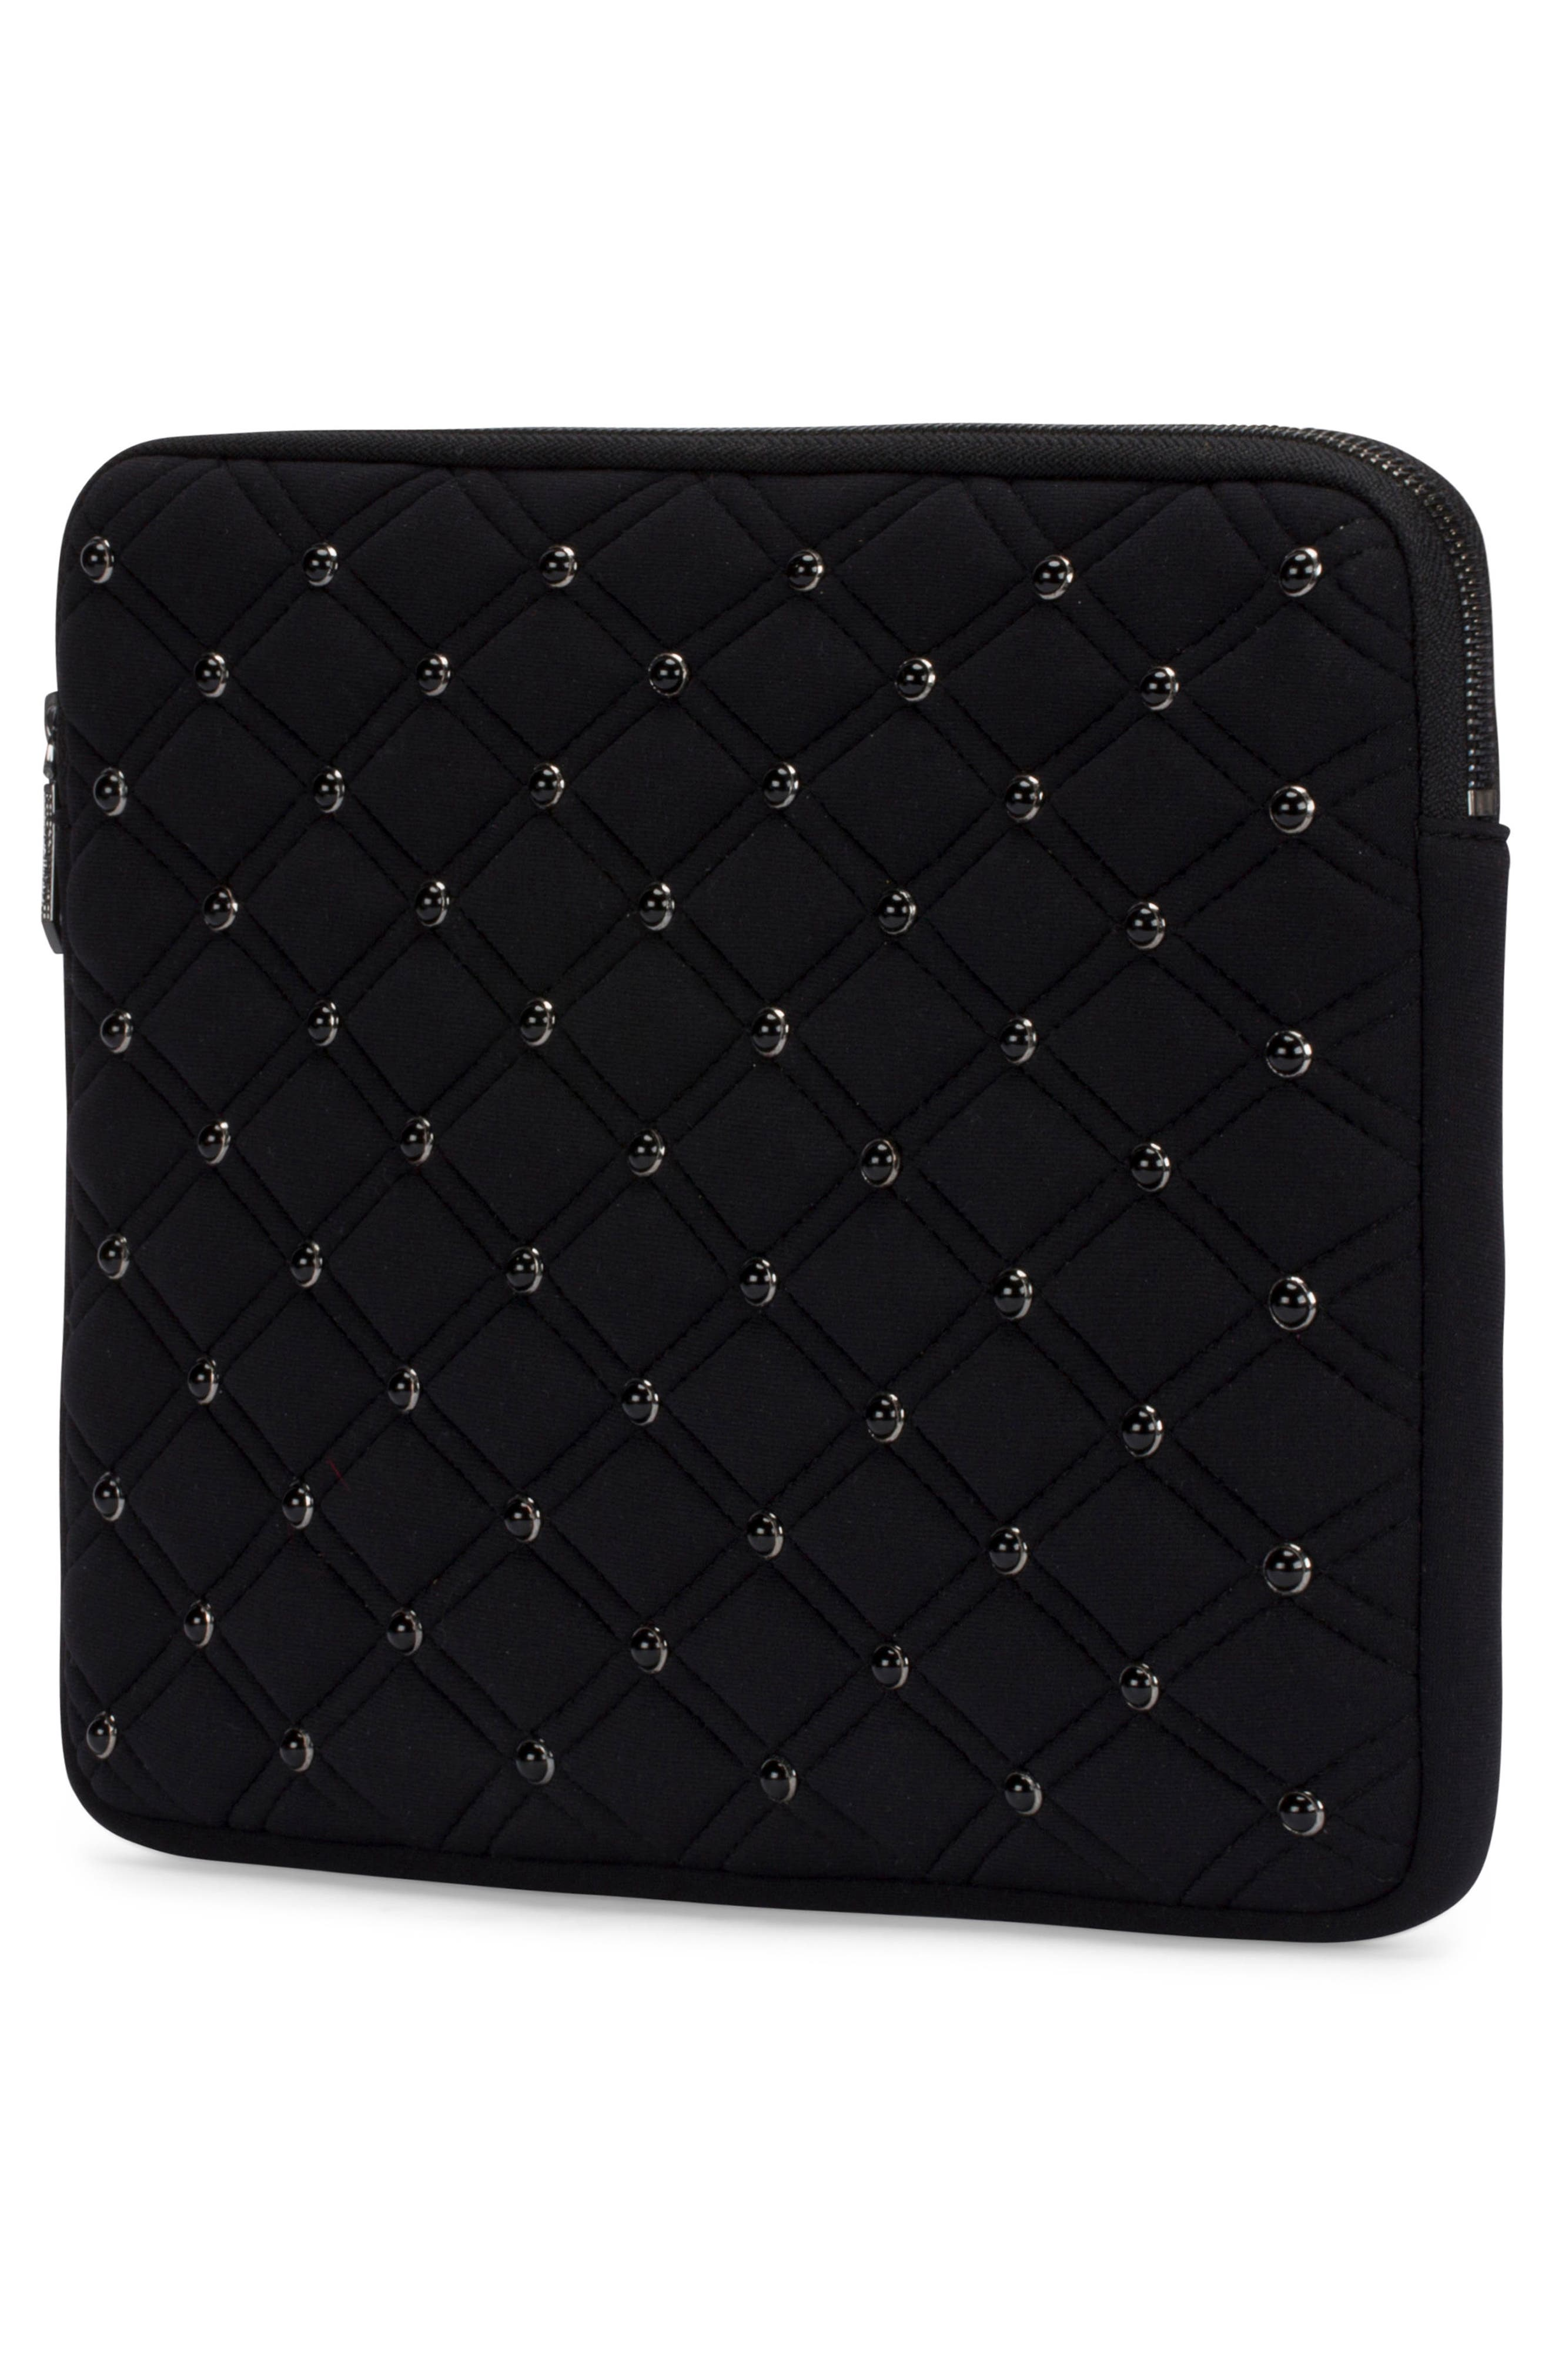 Quilted Stud Laptop Case,                             Alternate thumbnail 3, color,                             Black/ Black Pearl Studs